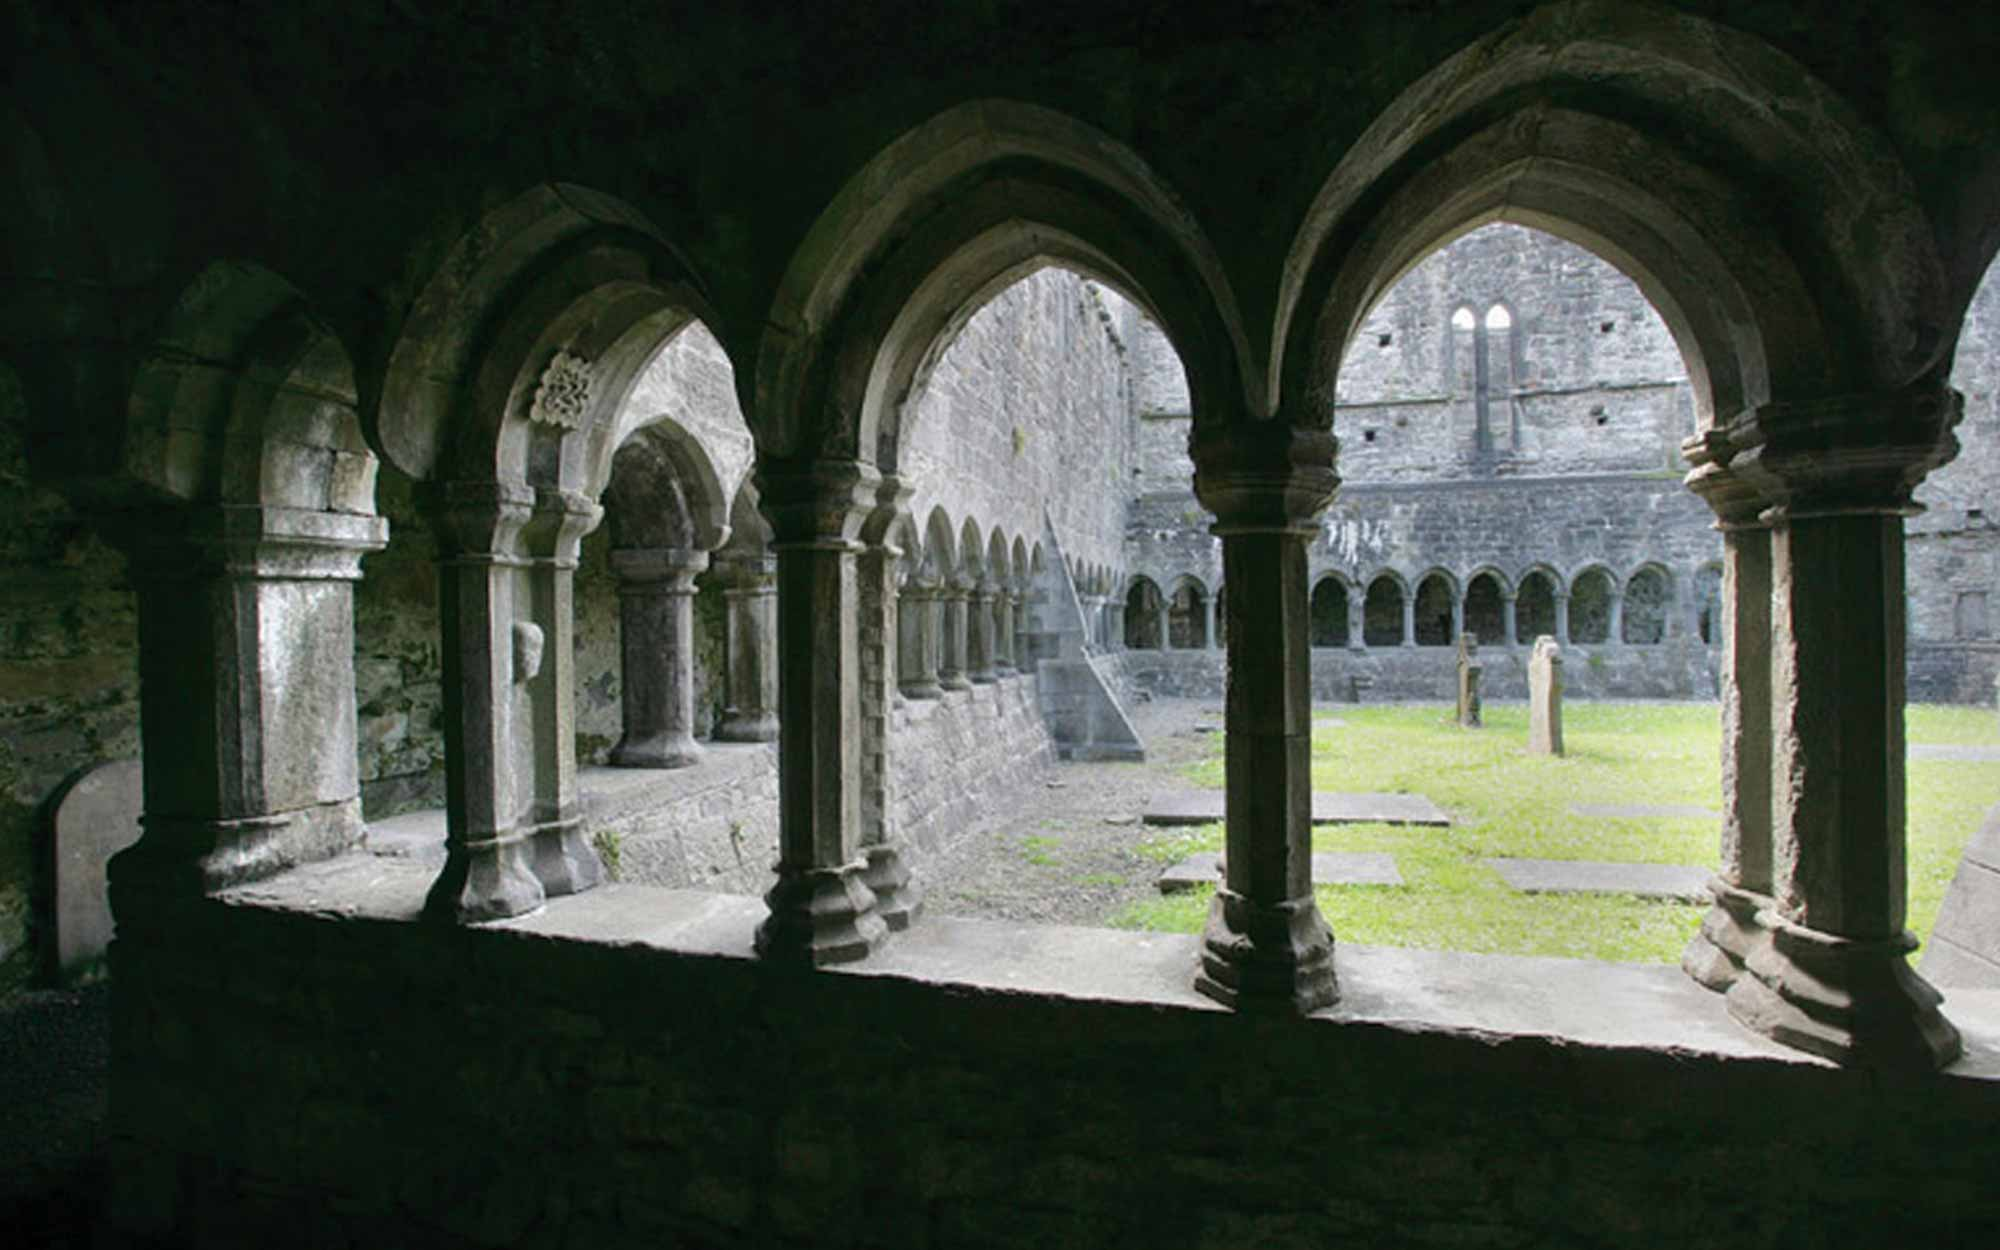 Cloister love knot stone Sligo Abbey